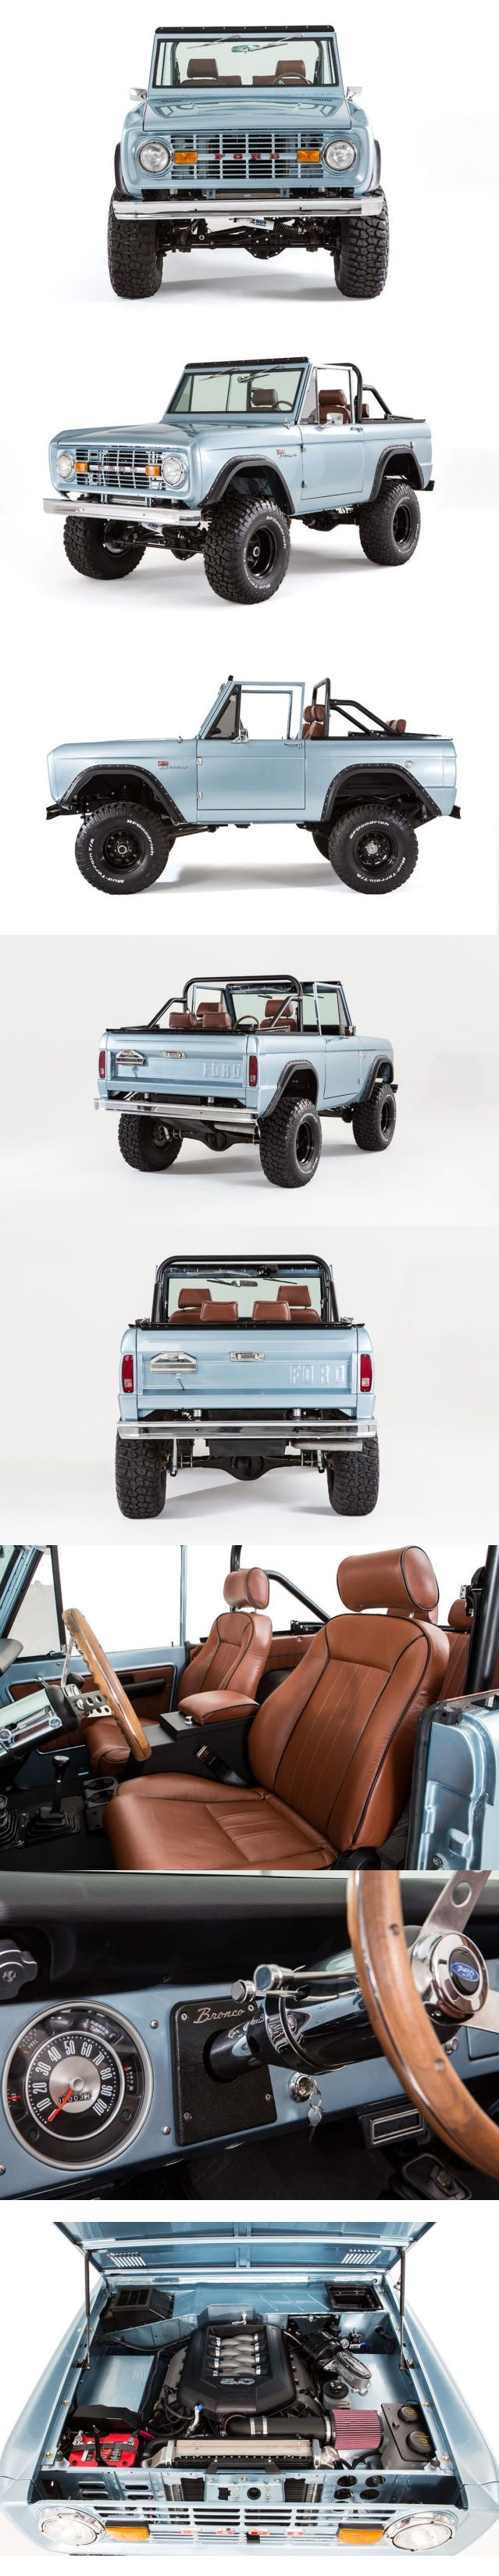 1974 ford bronco restoration with coyote 5 0l v8 engine bronco pinterest voitures. Black Bedroom Furniture Sets. Home Design Ideas